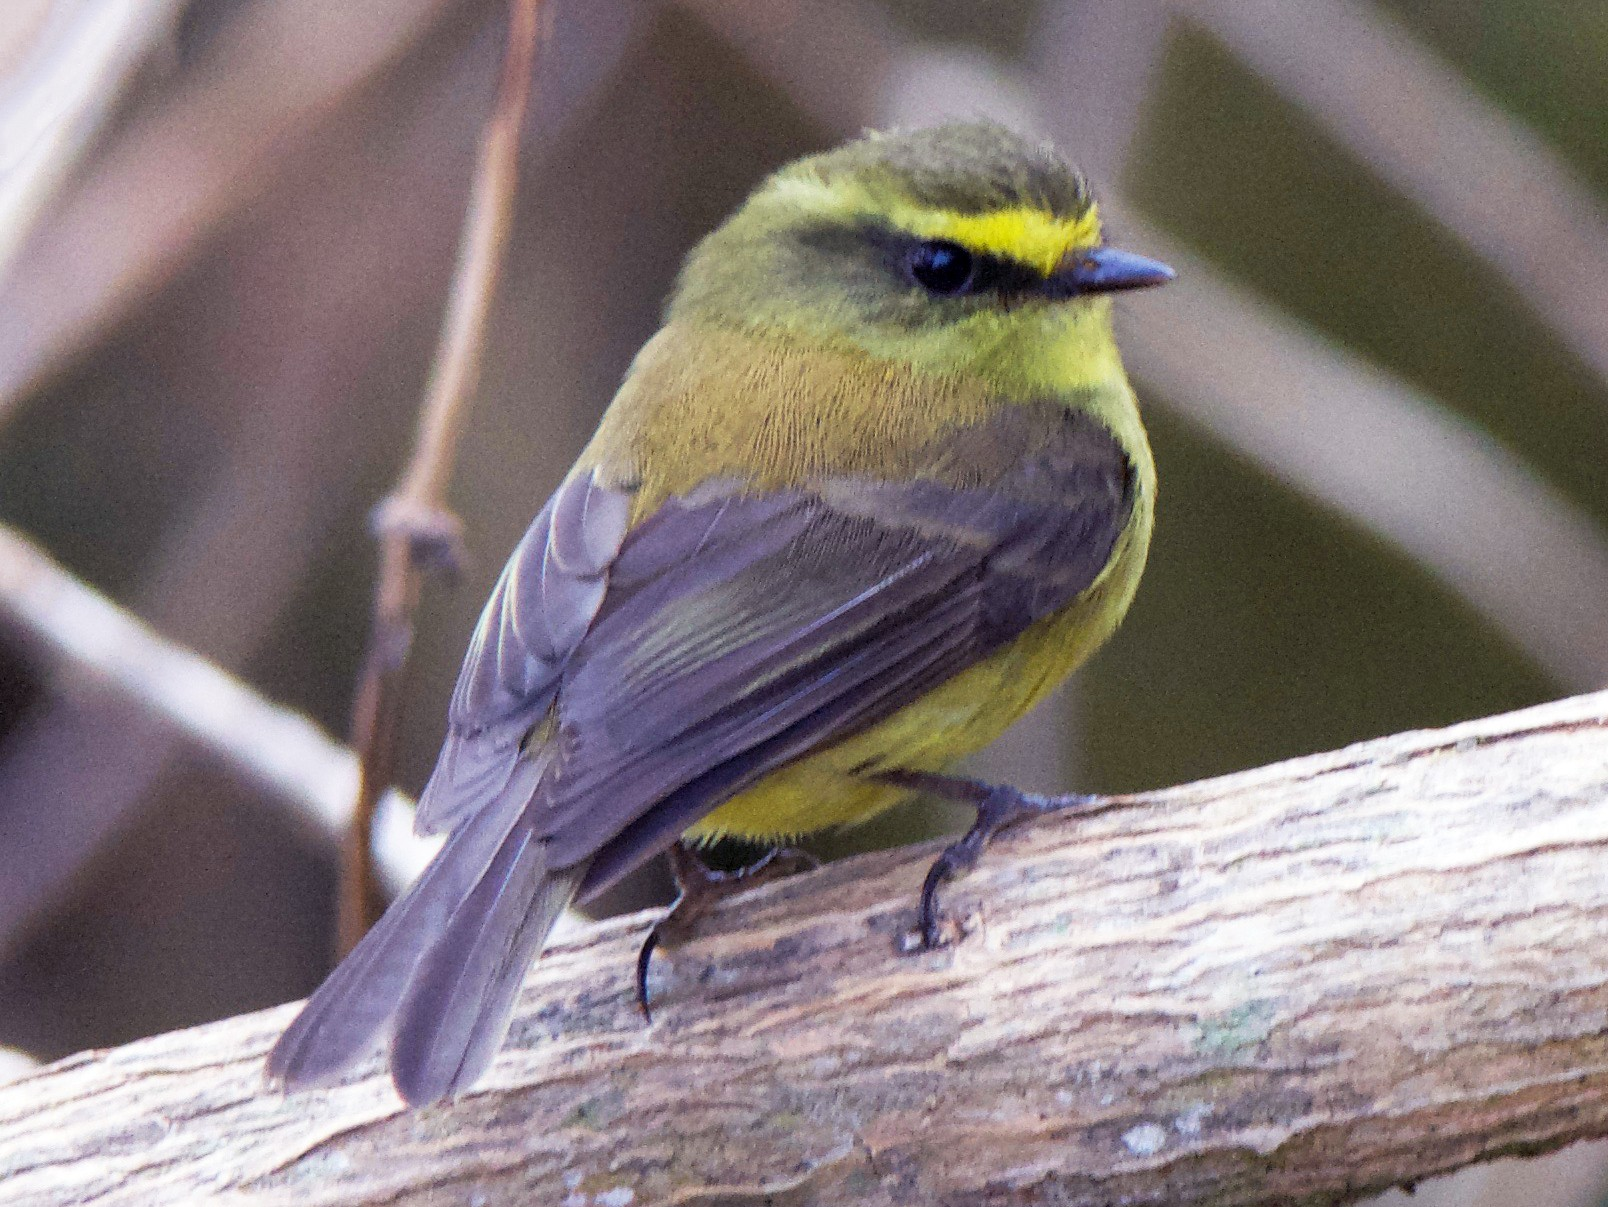 Yellow-bellied Chat-Tyrant - Cory Gregory